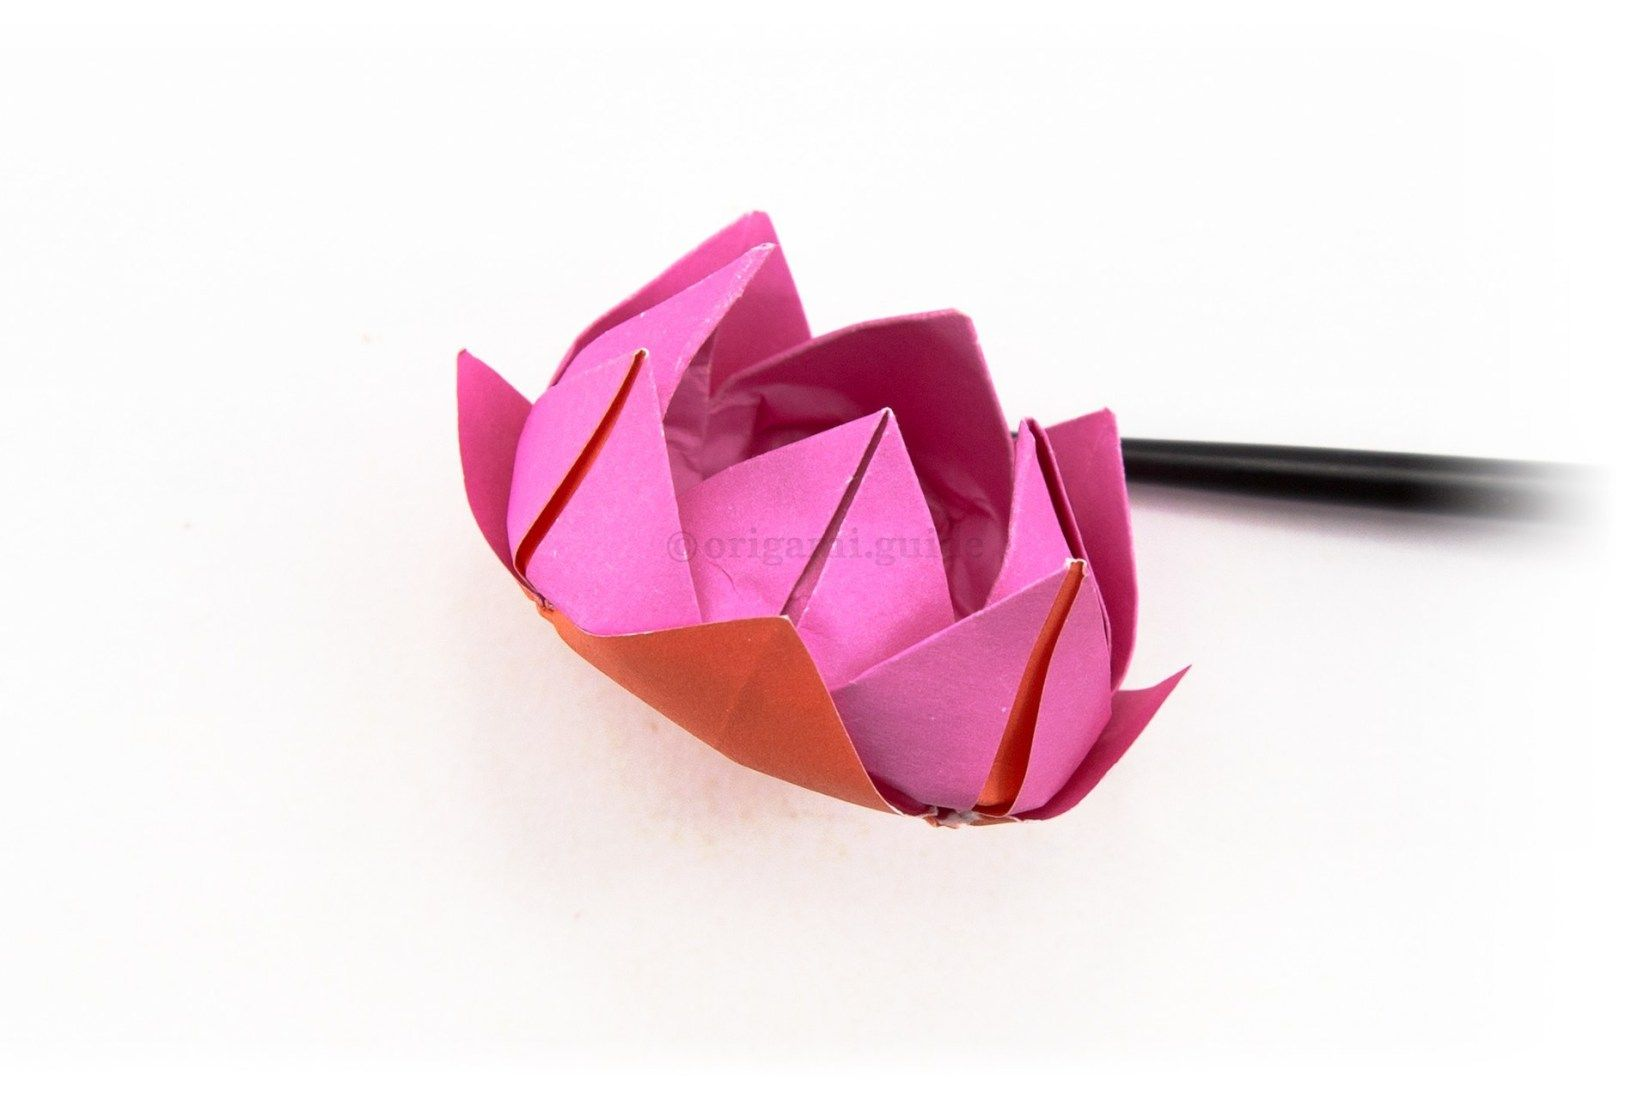 Incredible Origami Lotus Flower - Instructions & Video Tutorial ... | 1100x1650